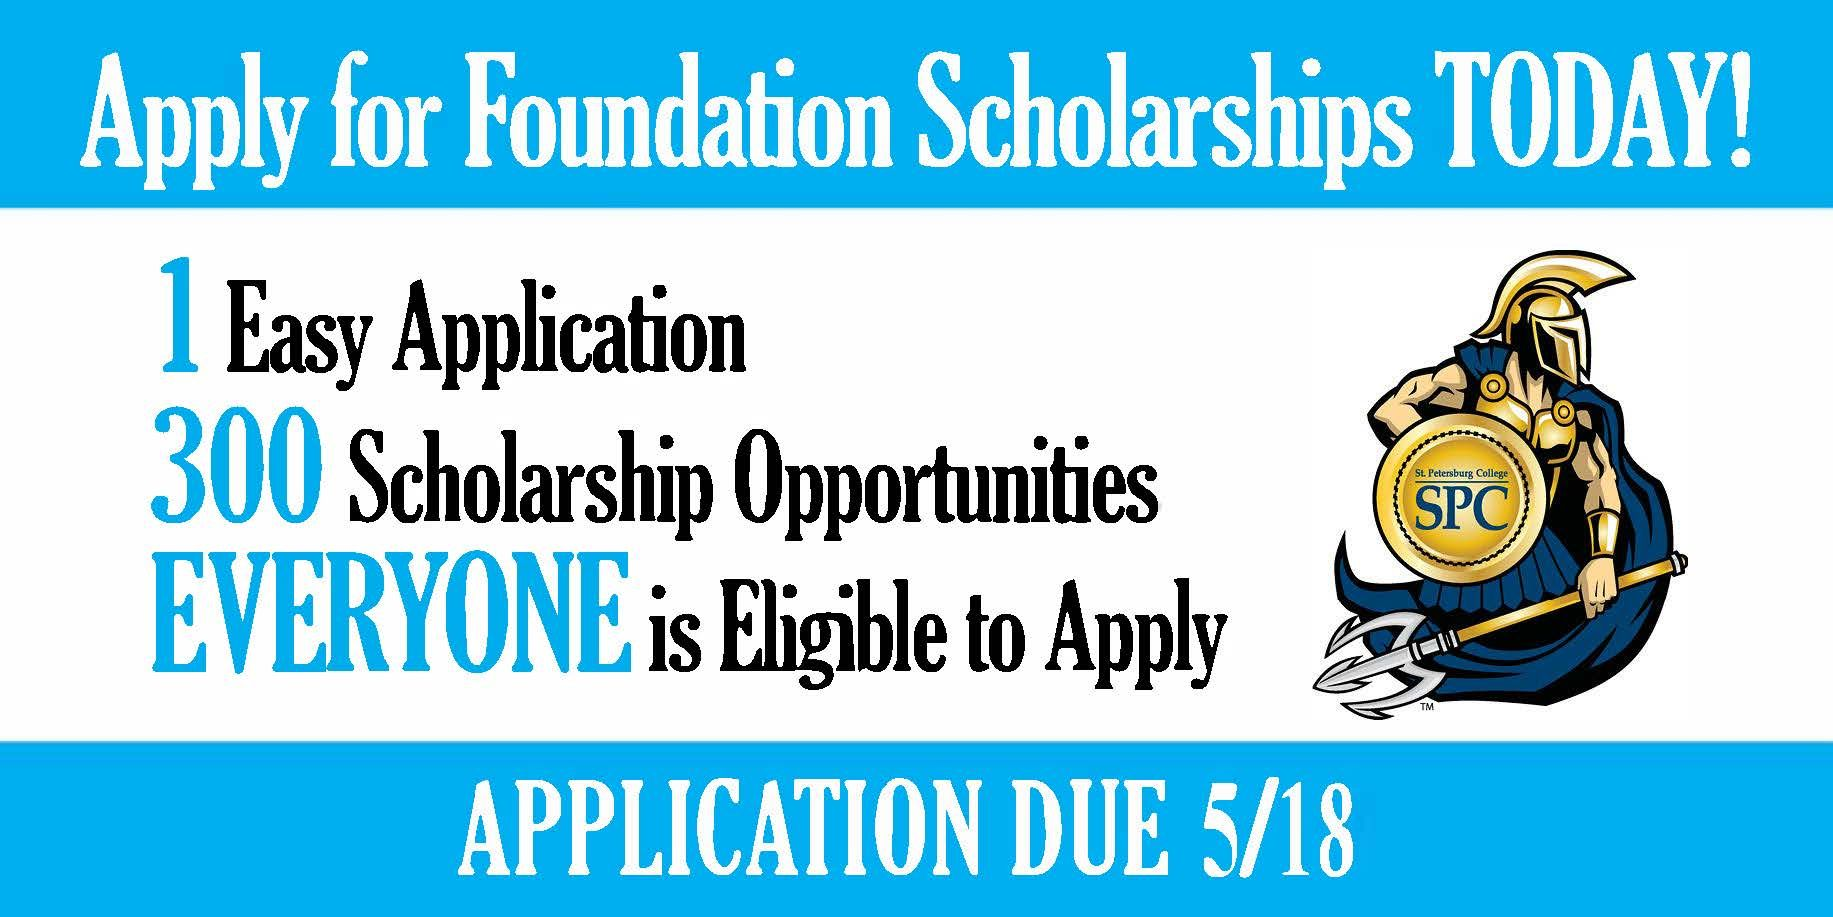 The Spc Foundation Offers Hundreds Of Scholarships For New And